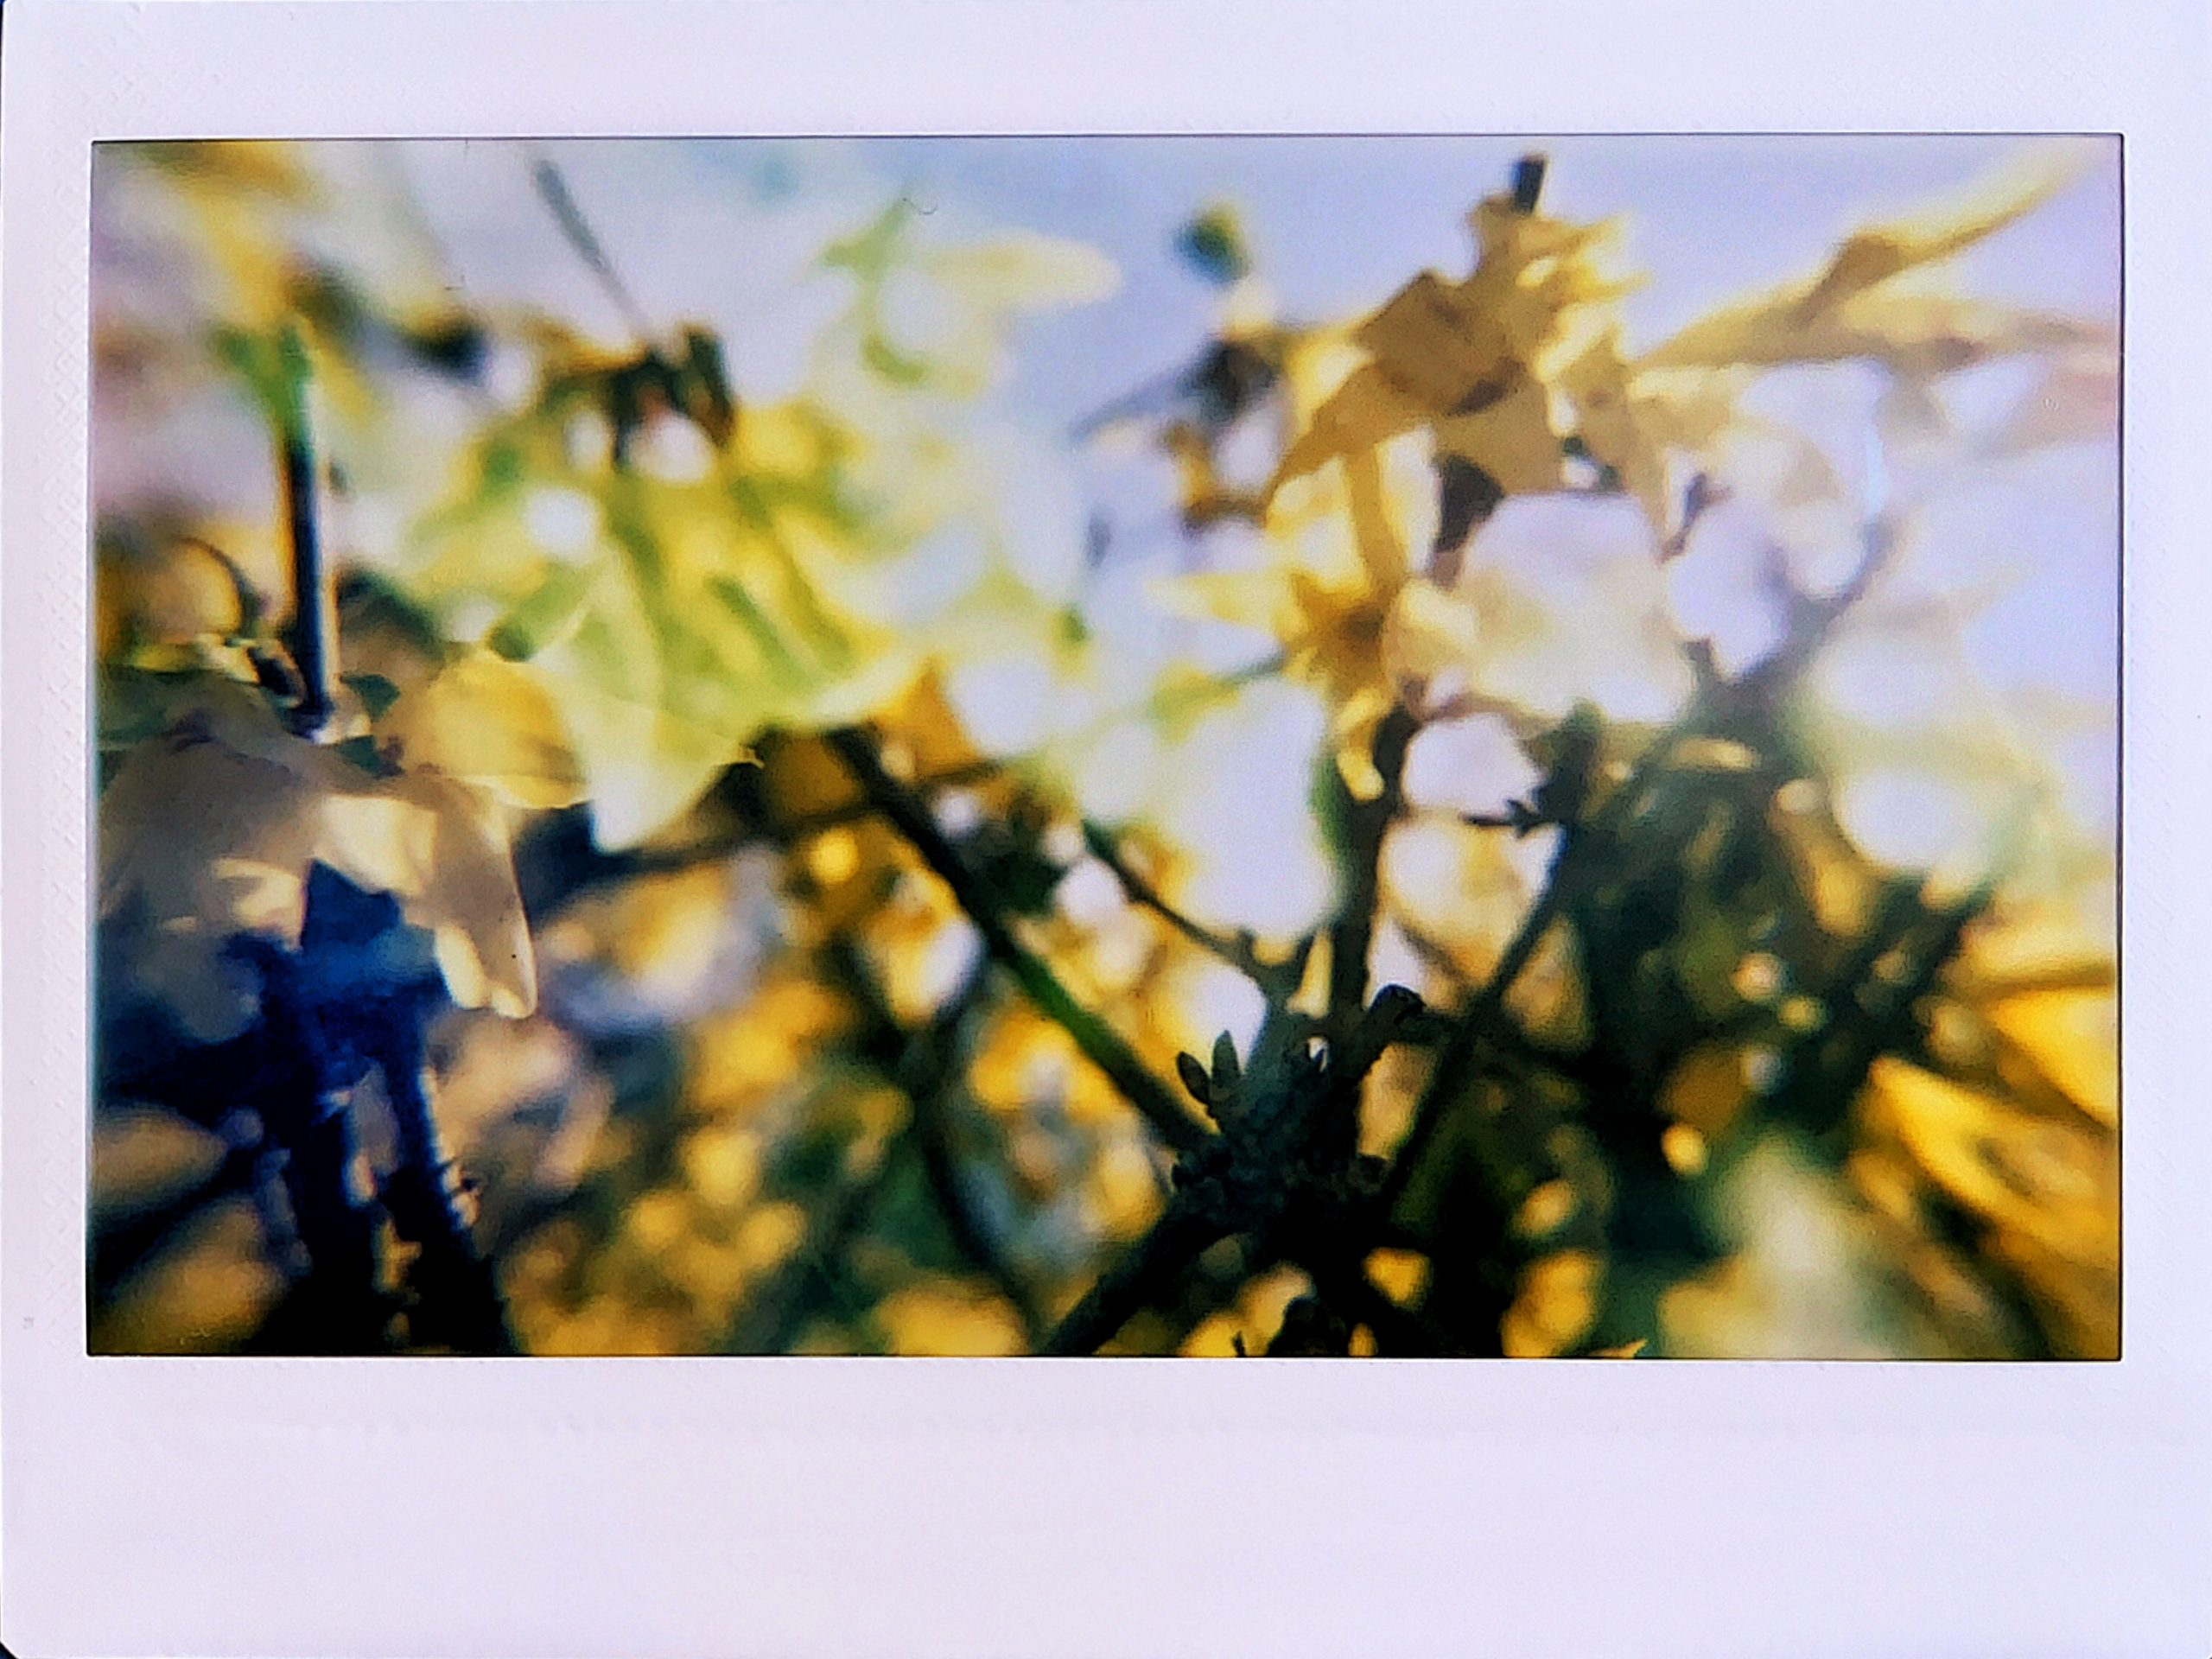 Experimenting with Instant Film